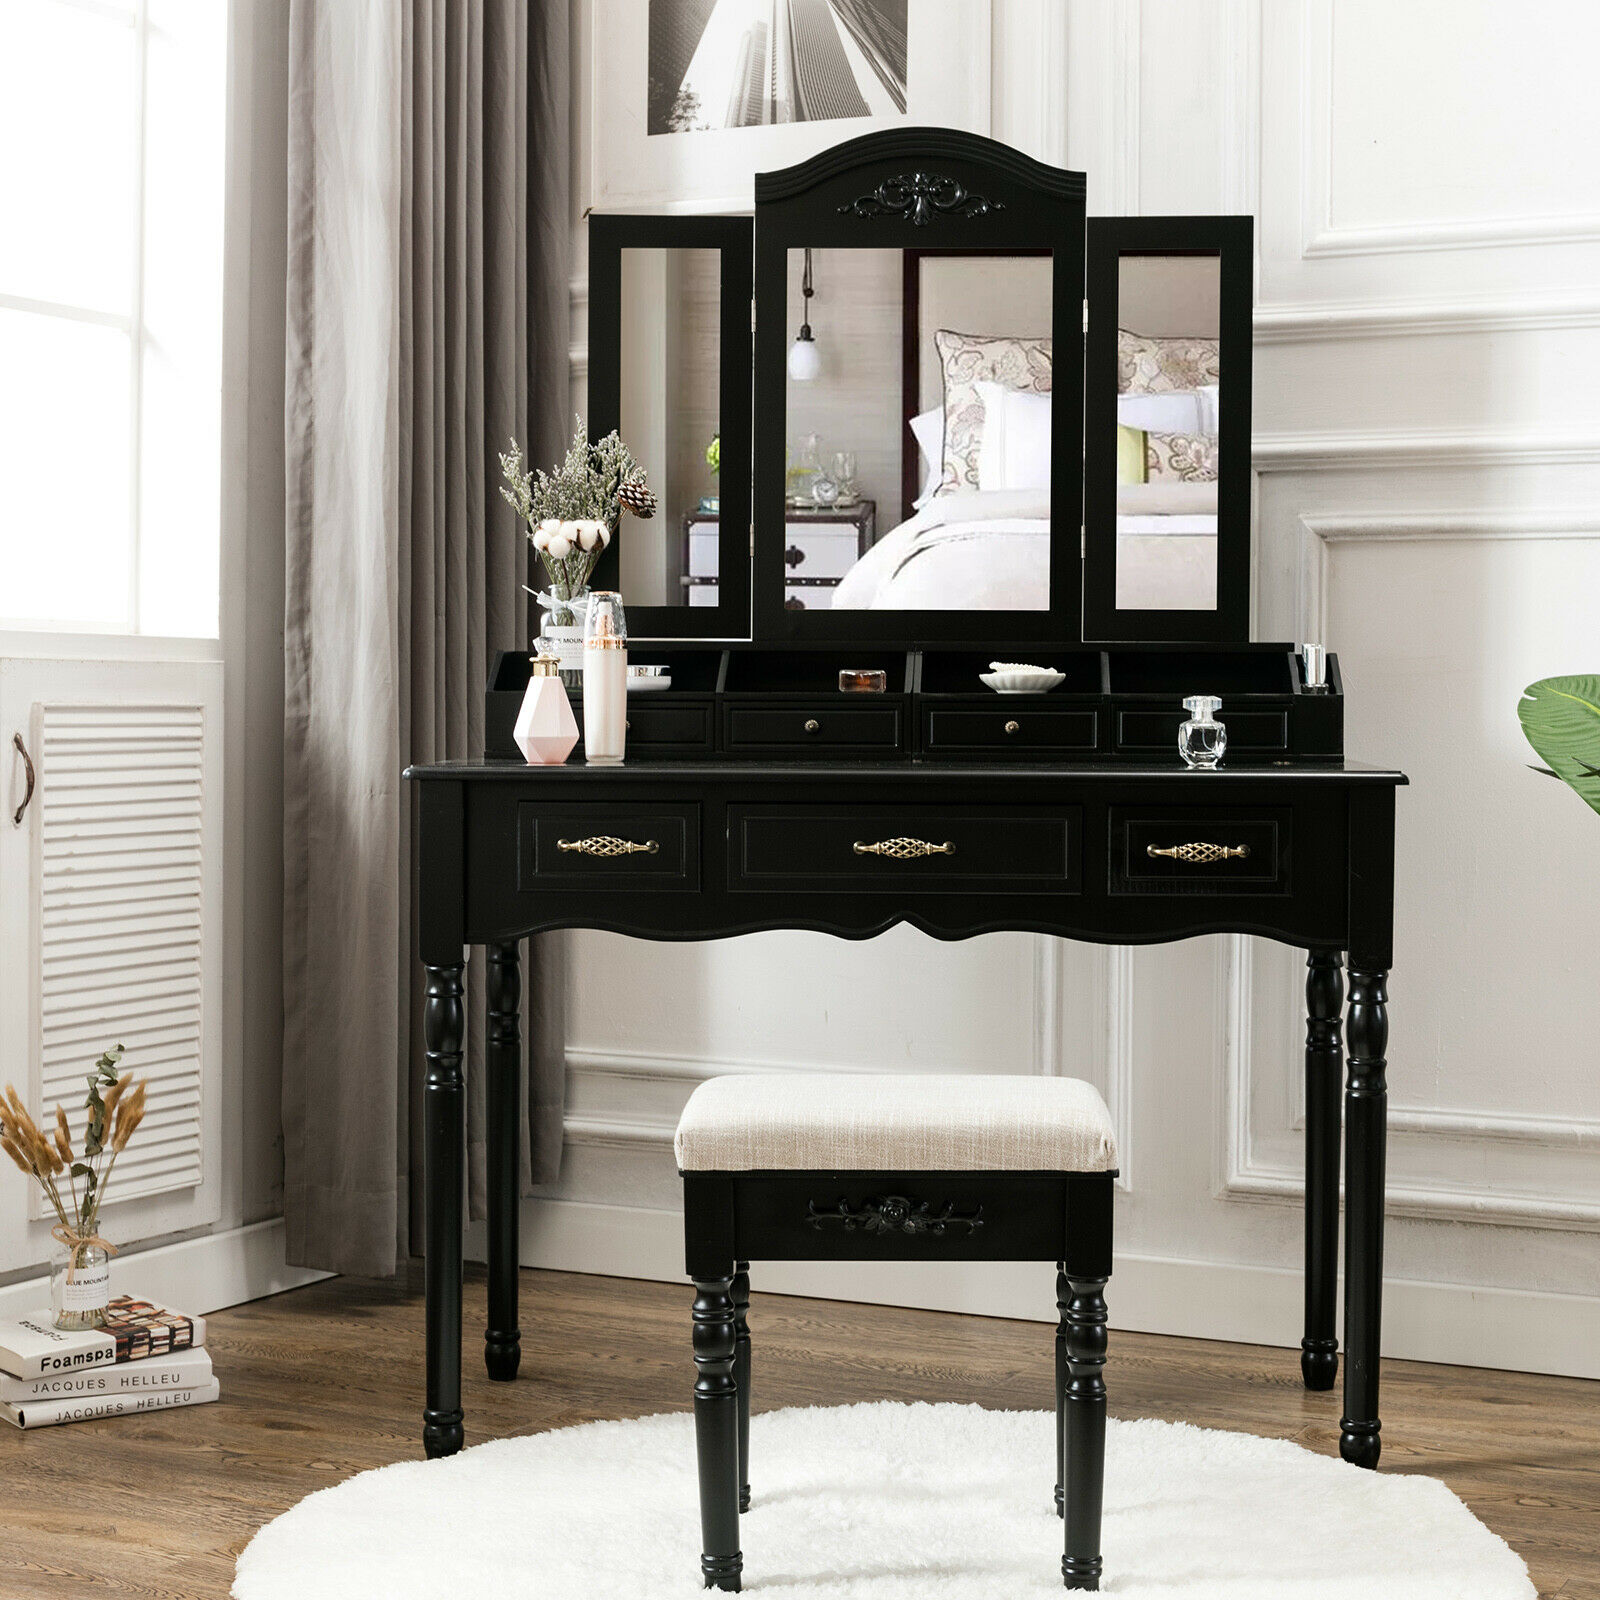 Black Vanity Makeup Table Set Folding Mirror 7 Drawers W ...